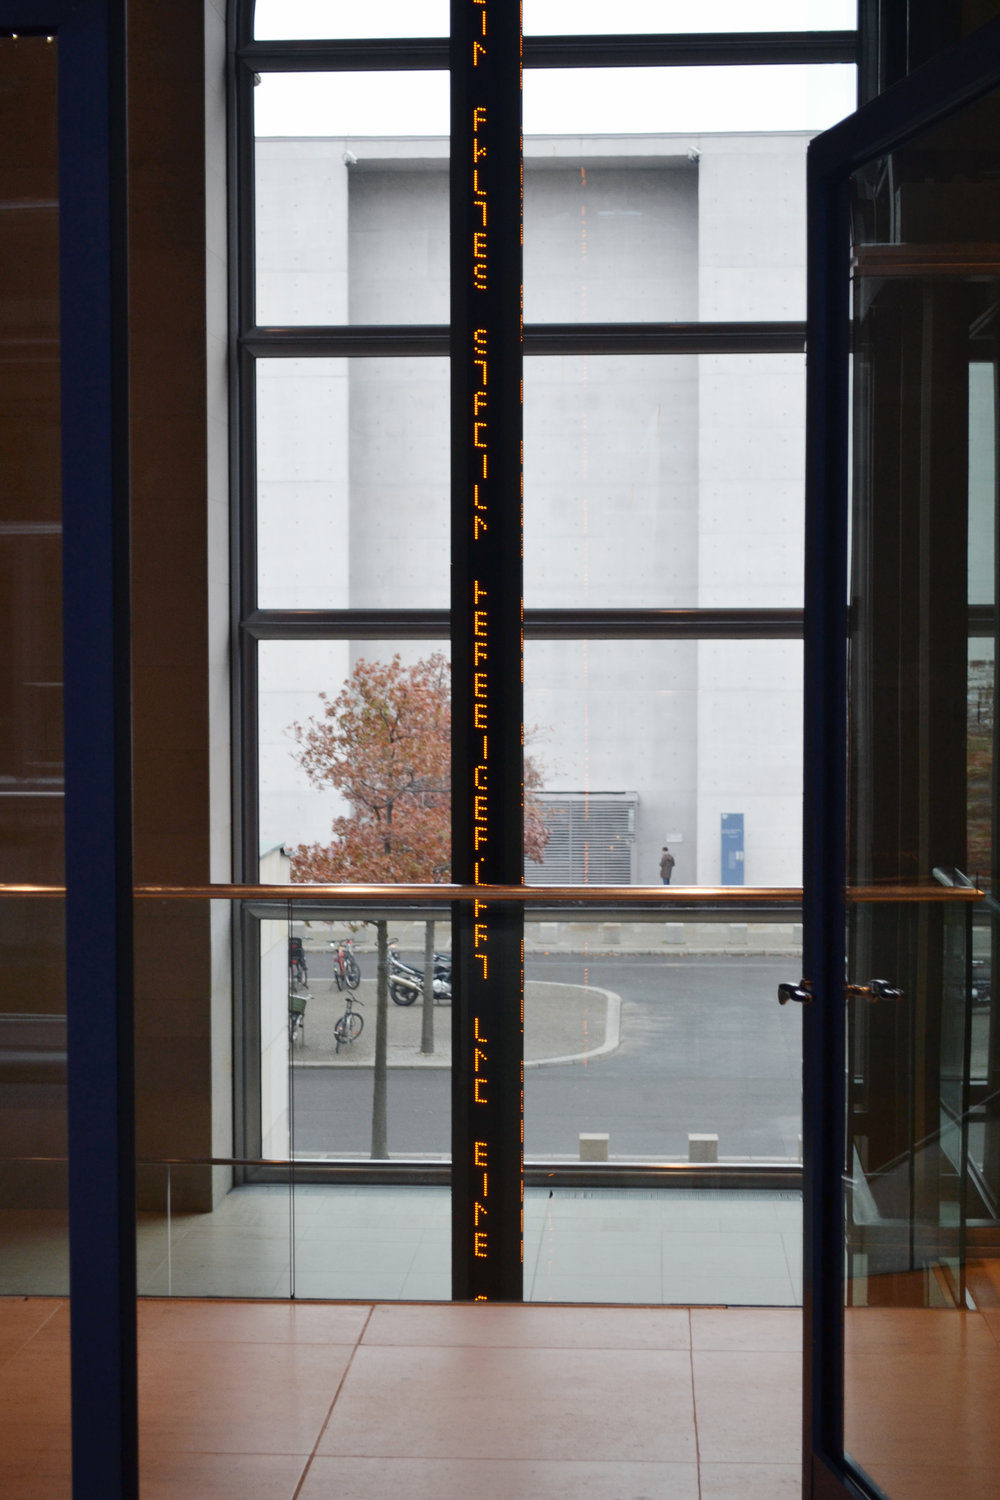 Jenny Holzer installation in the North Entrance hall